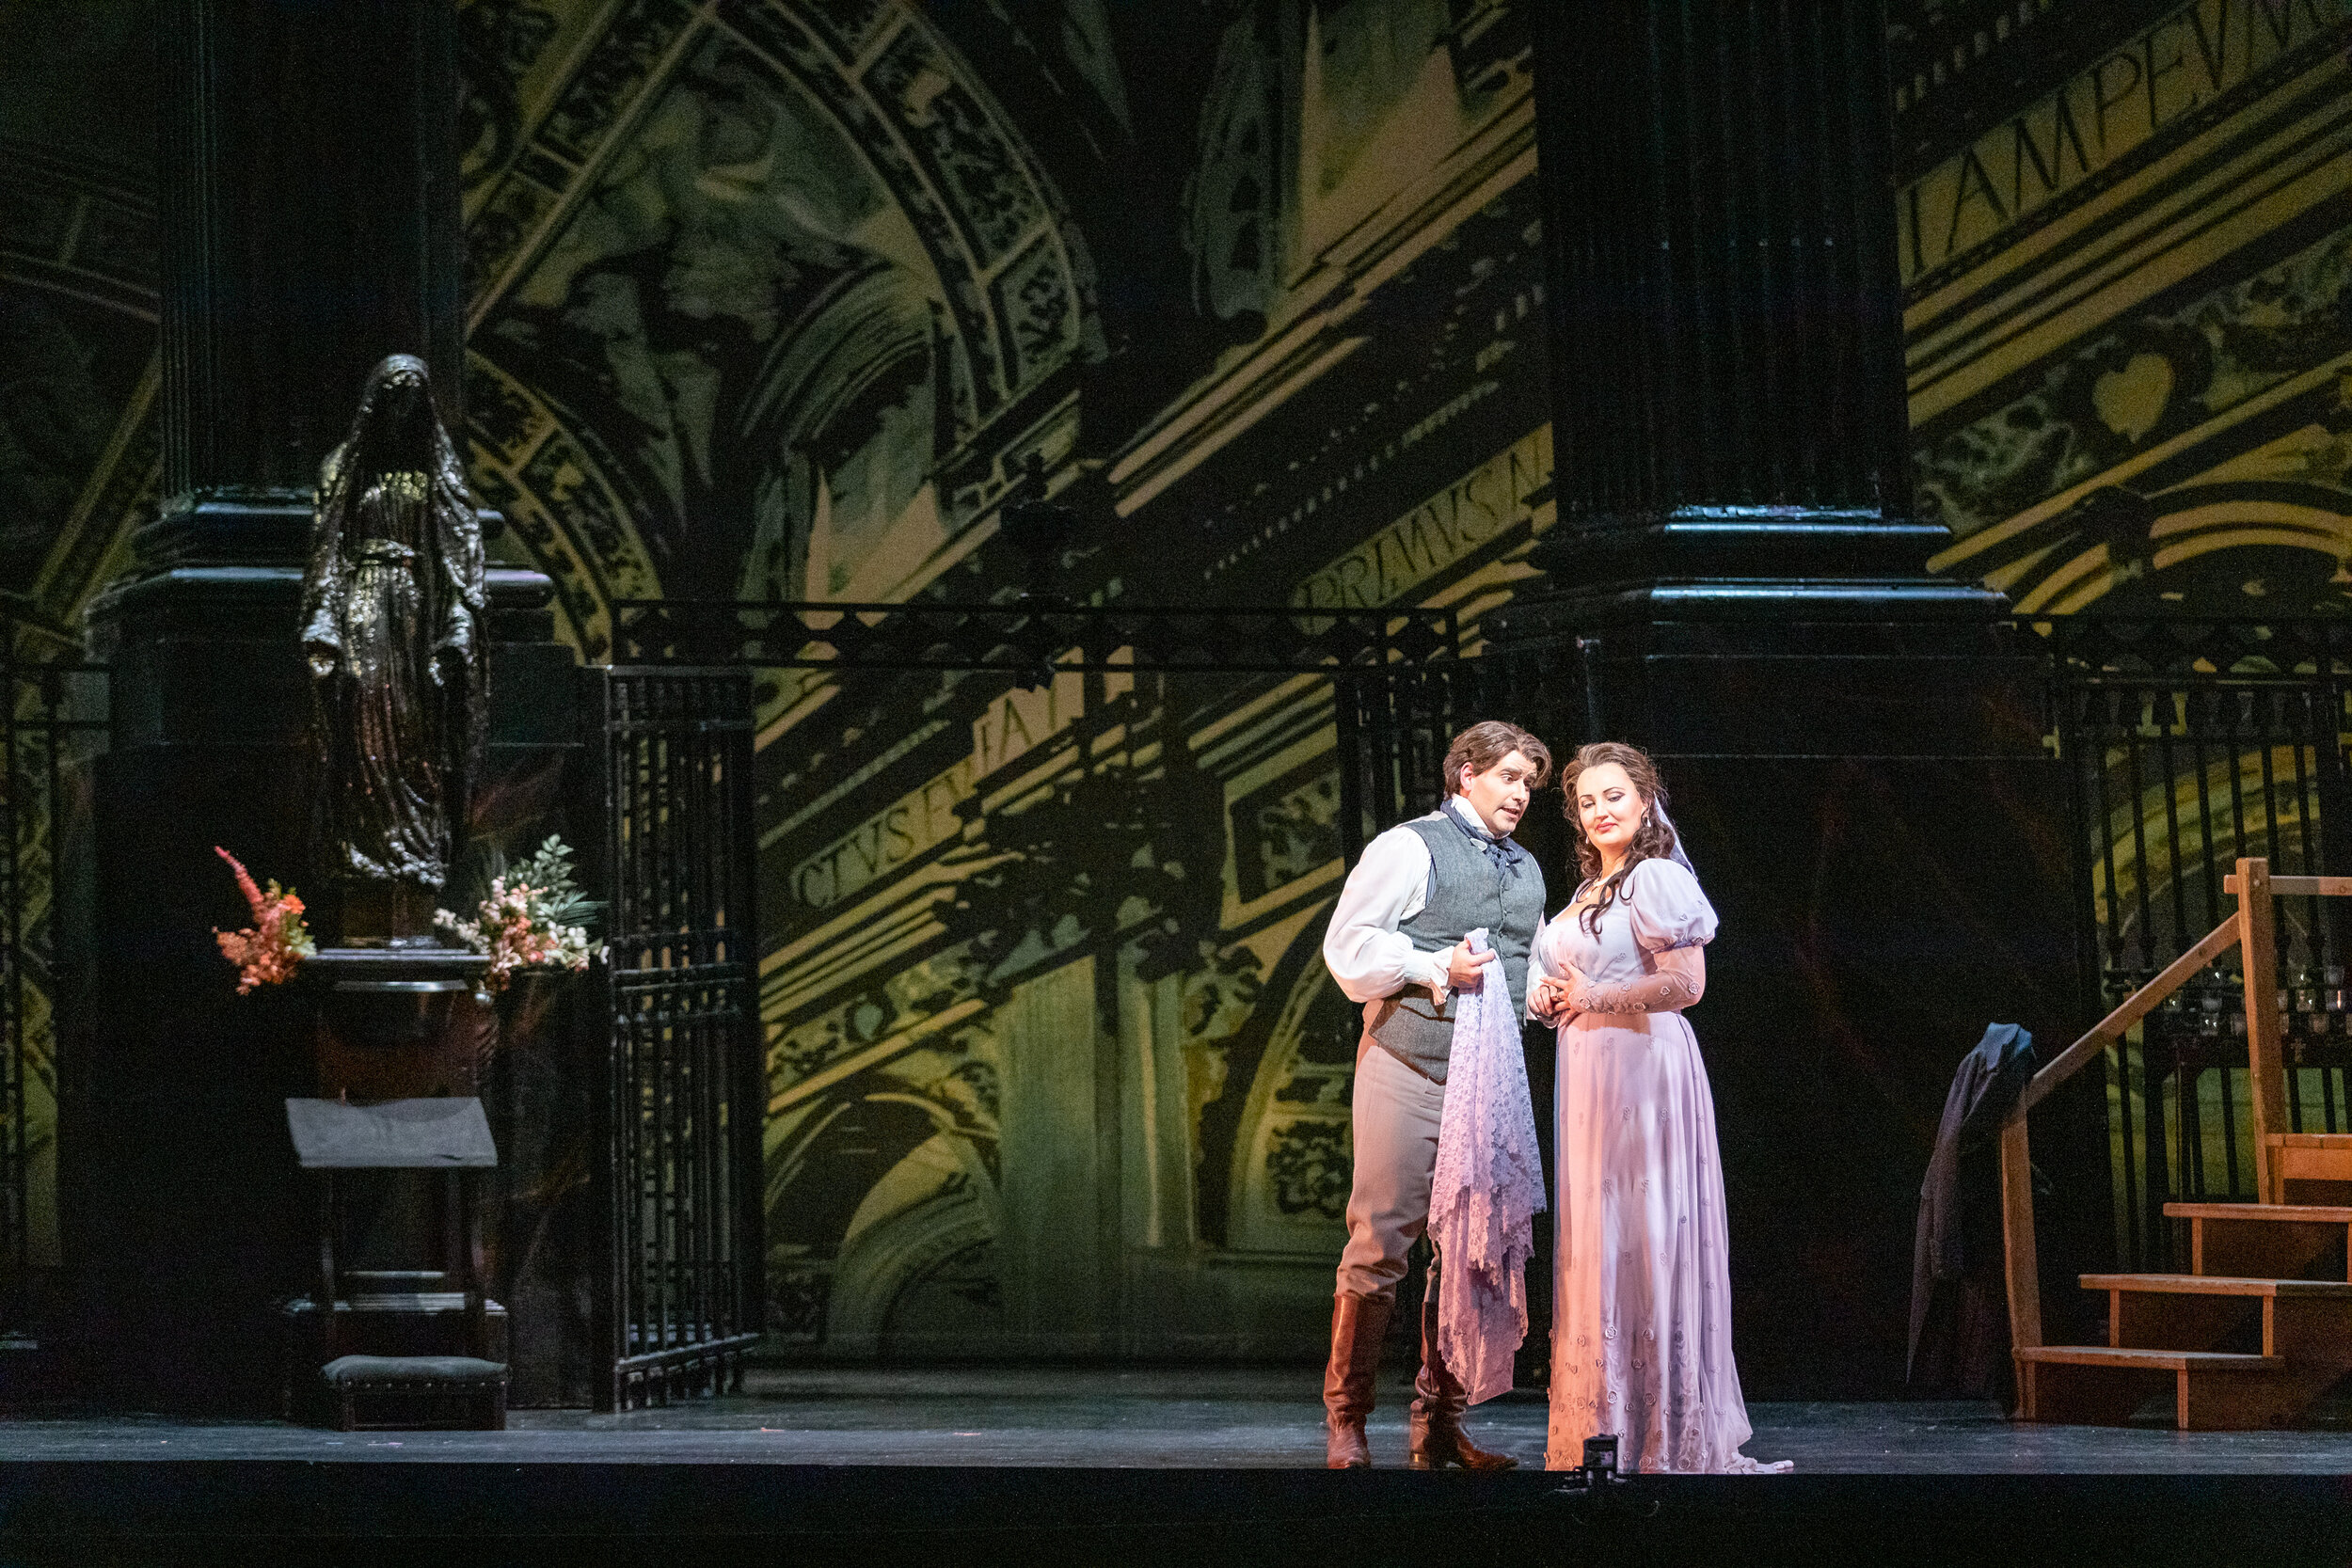 Matthew Vickers as Mario Cavaradossi and Ewa Płonka as Floria Tosca. Photo by Ben Schill Photography; courtesy of Virginia Opera.